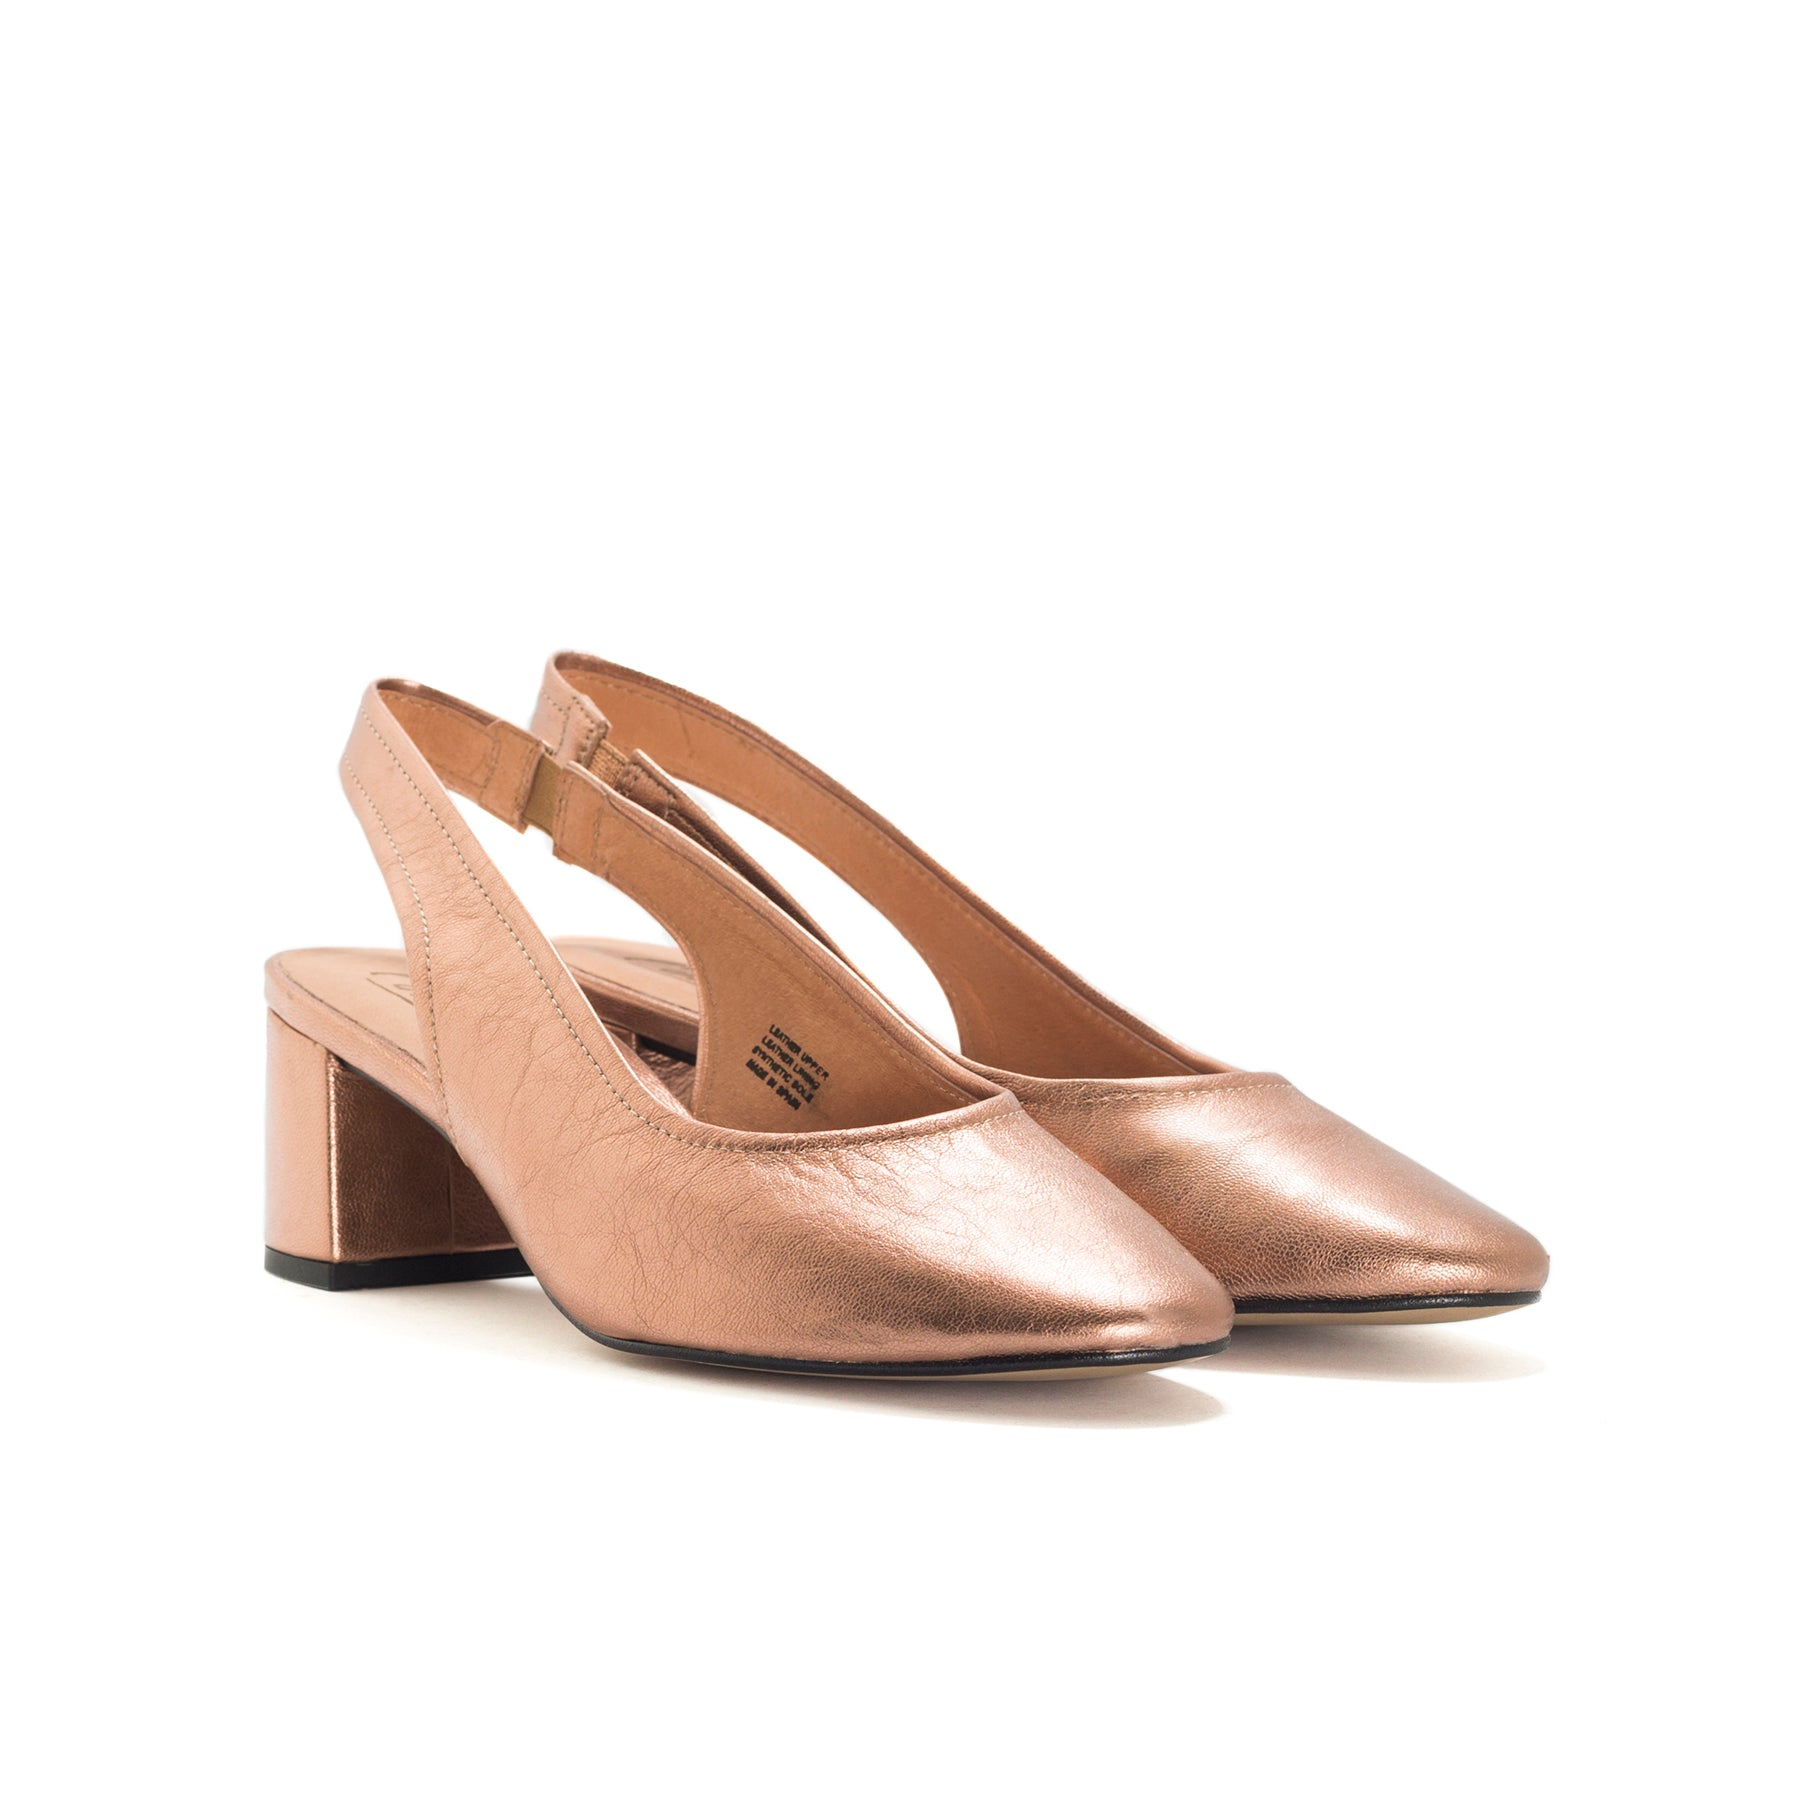 Juros Cooper Metallic Leather Pumps